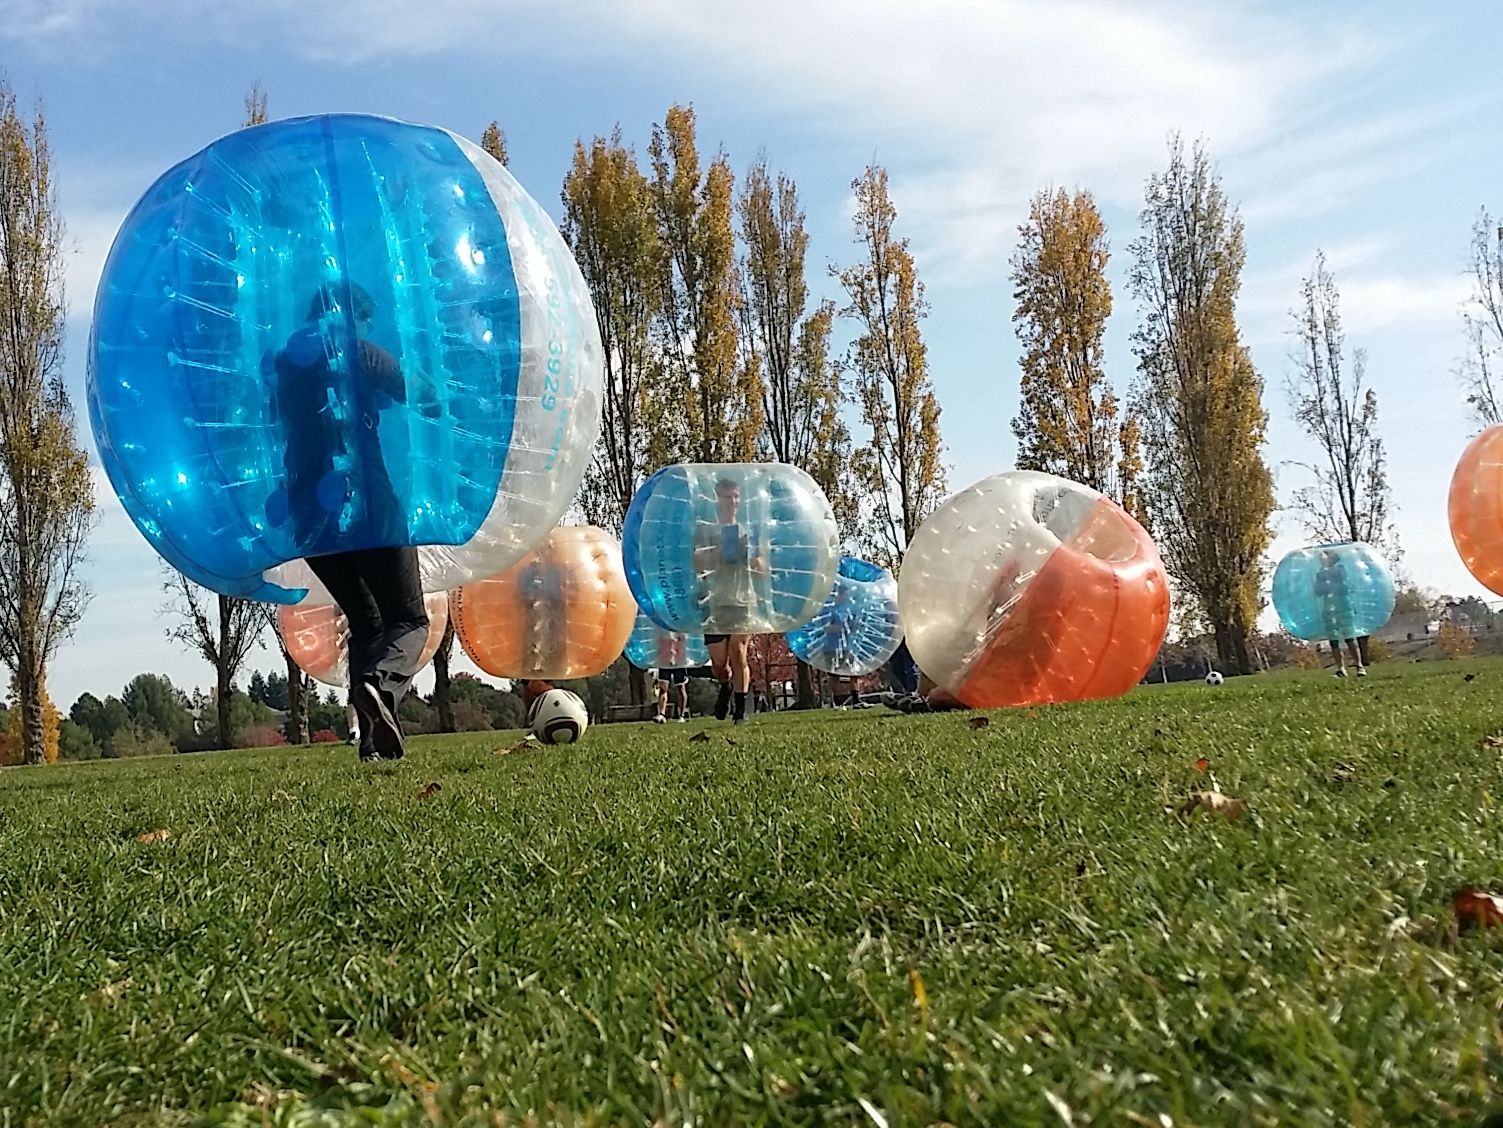 PlanetXone Bubble Soccer in Golden Gate Park